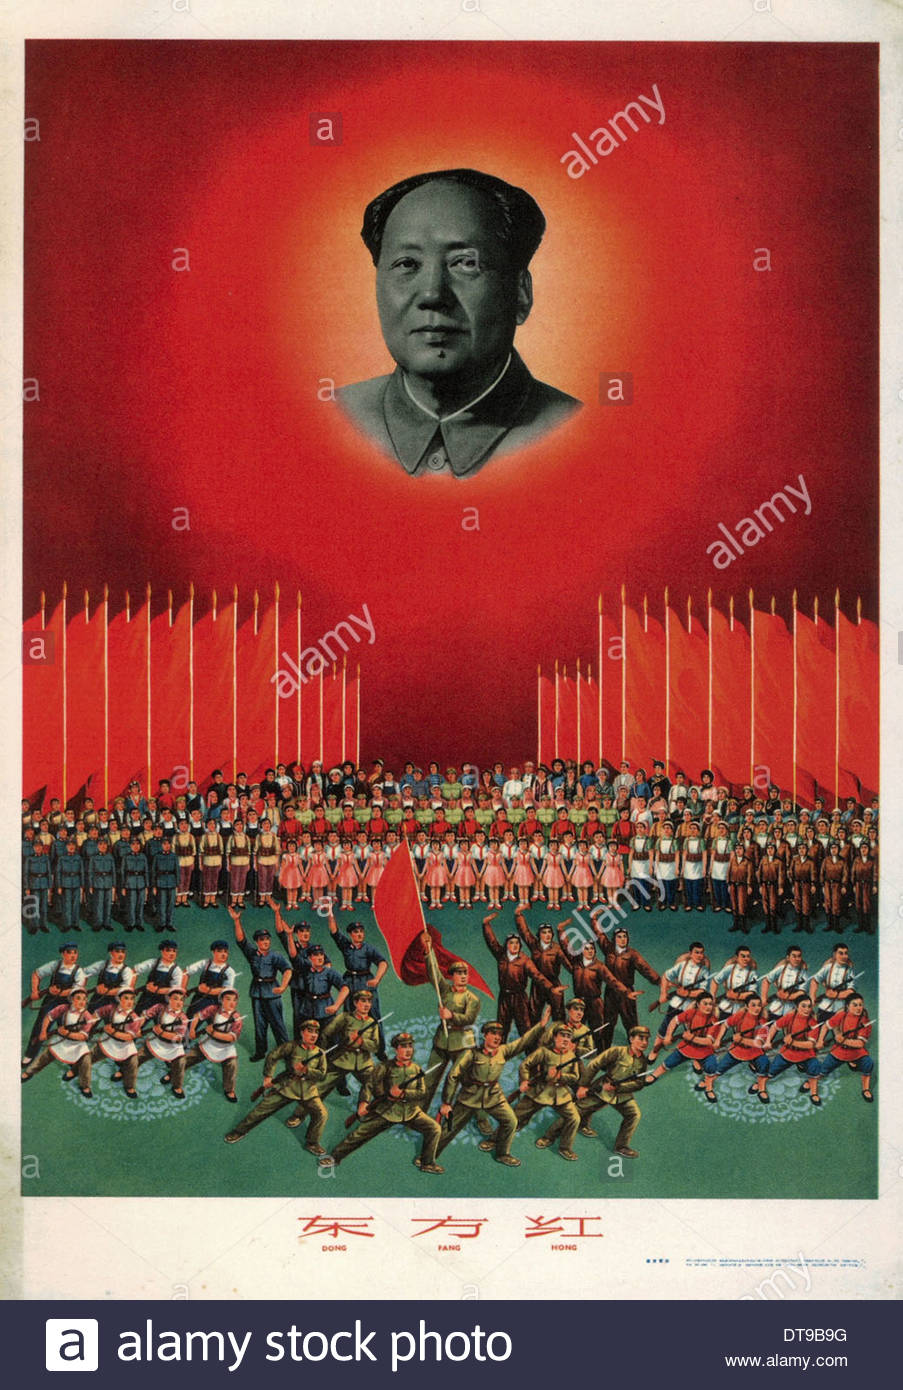 The East Is Red, 1965. Artist: Zhang Yuqing (1909-1993) - Stock Image